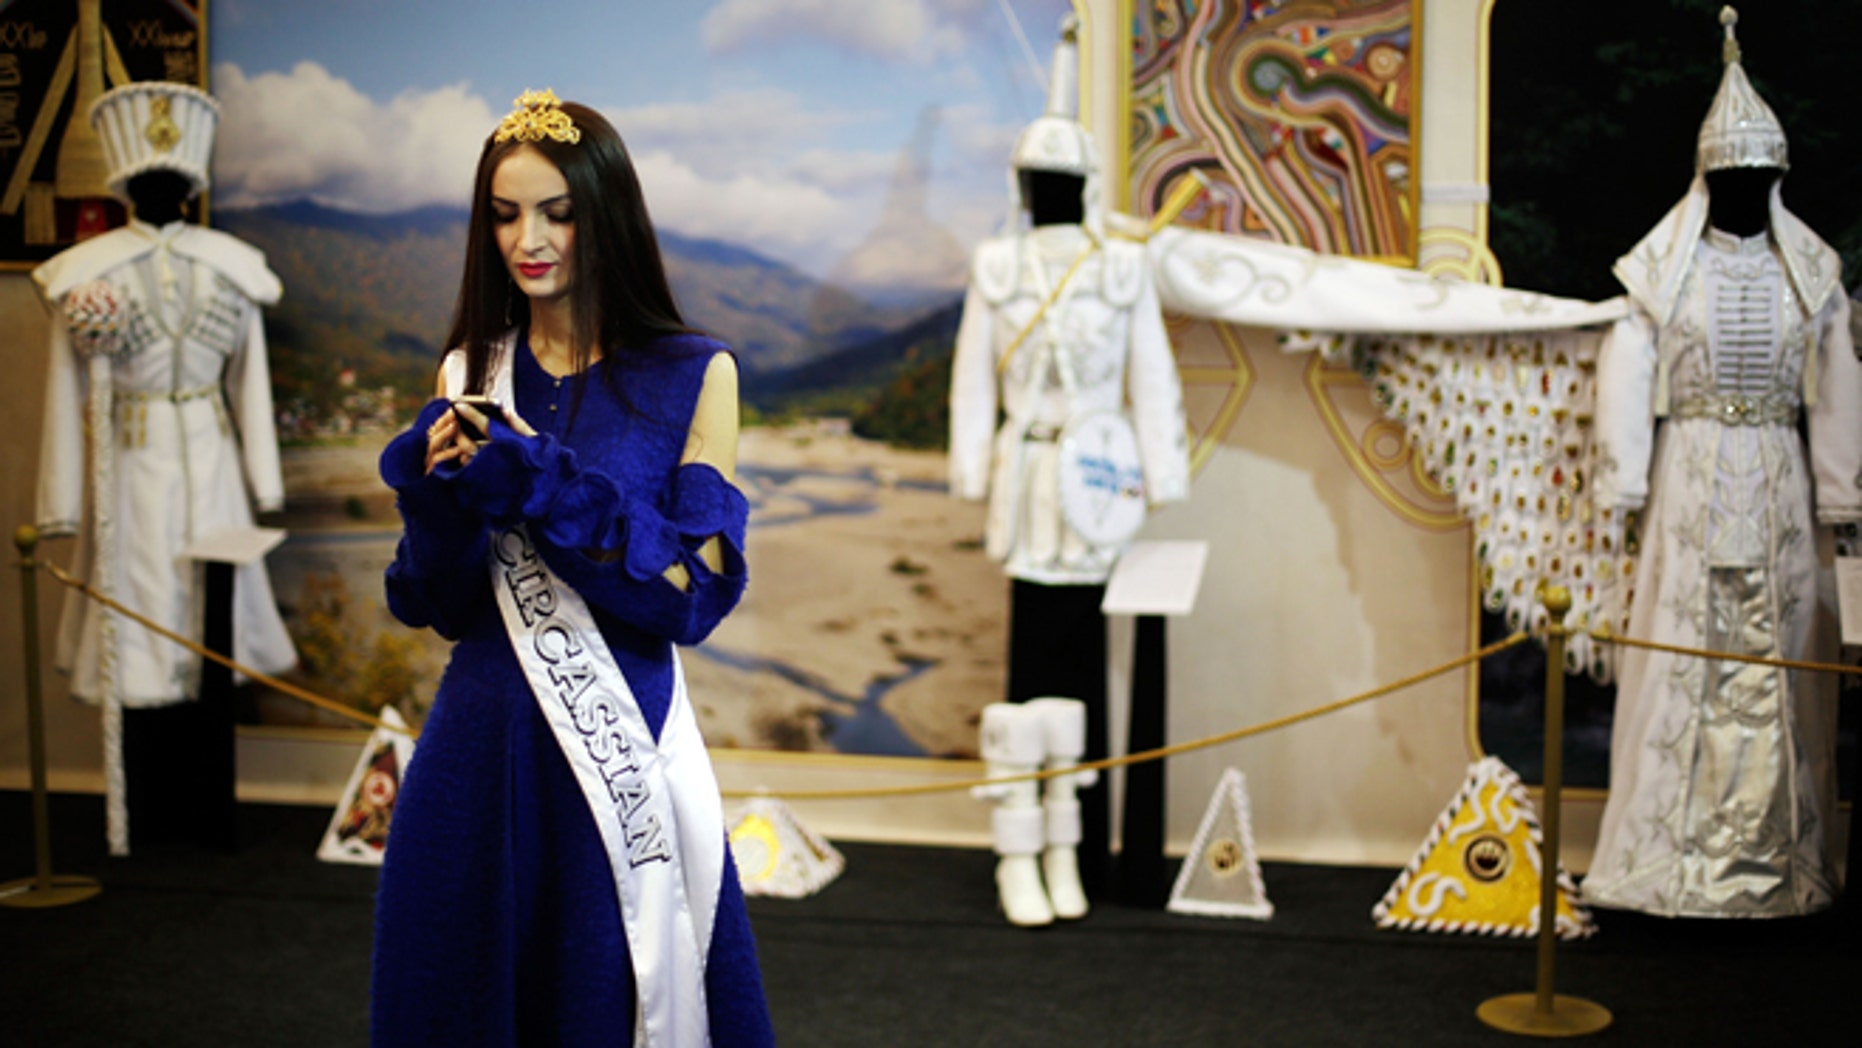 Feb. 14, 2014: In this photo, Bella Kukan, Miss Circassia from the town of Maikop, waits to greet visitors during a folk theatre troupe performance at the Circassian House in Olympic Park at the 2014 Winter Olympics in Sochi, Russia. The Circassians, an ethnic group indigenous to the land now hosting the Olympics, are using the games to call the worlds attention to their culture and history, which includes massacres by imperial Russian armies and persecution by Stalin.